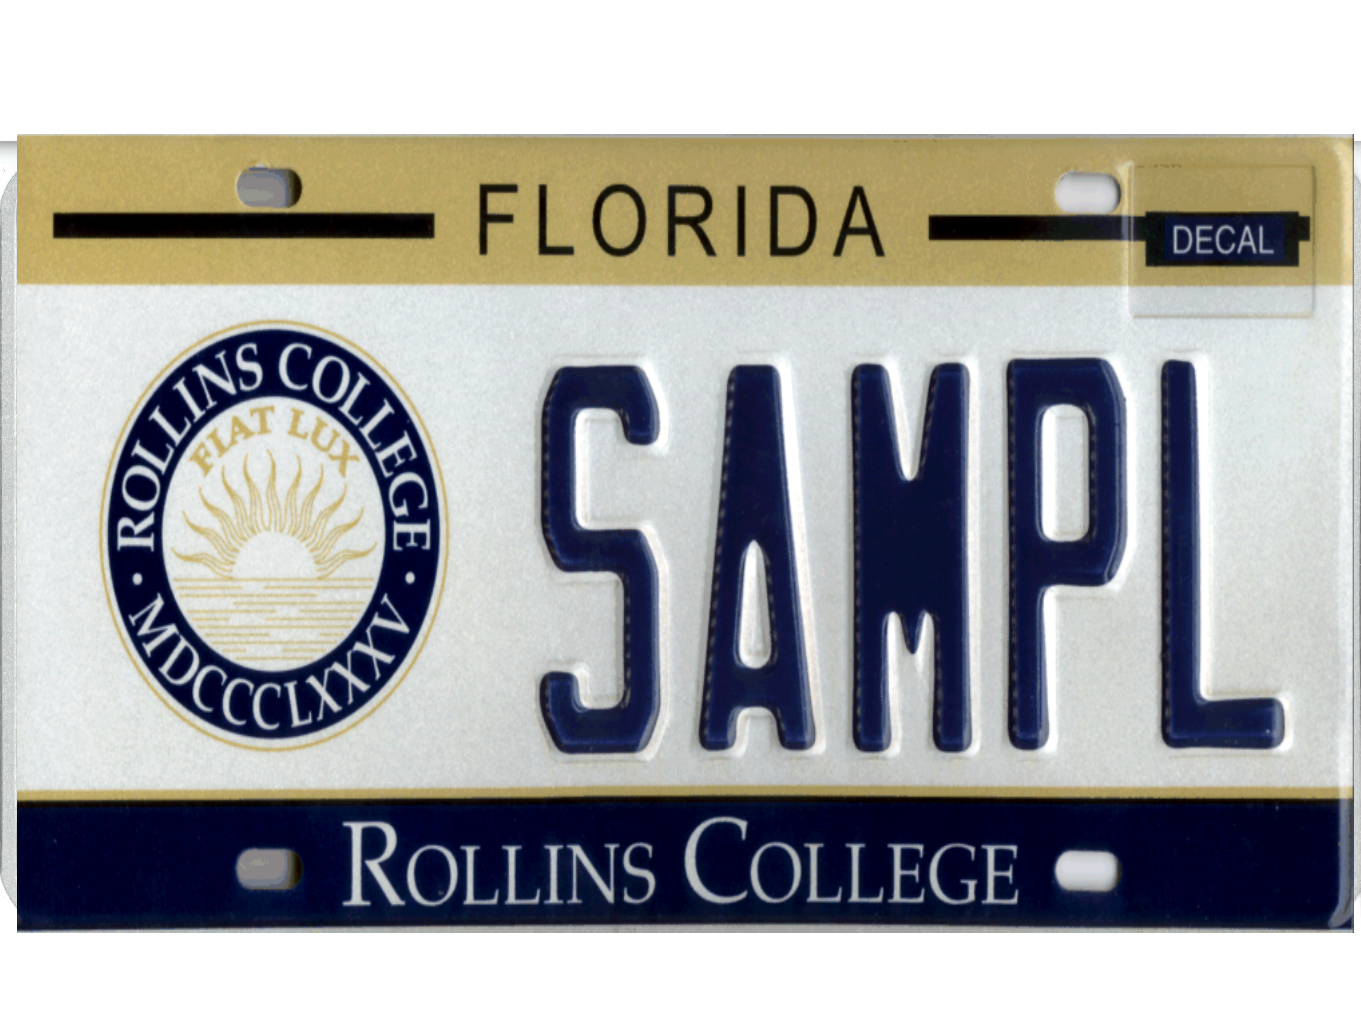 The Rollins College license plate.